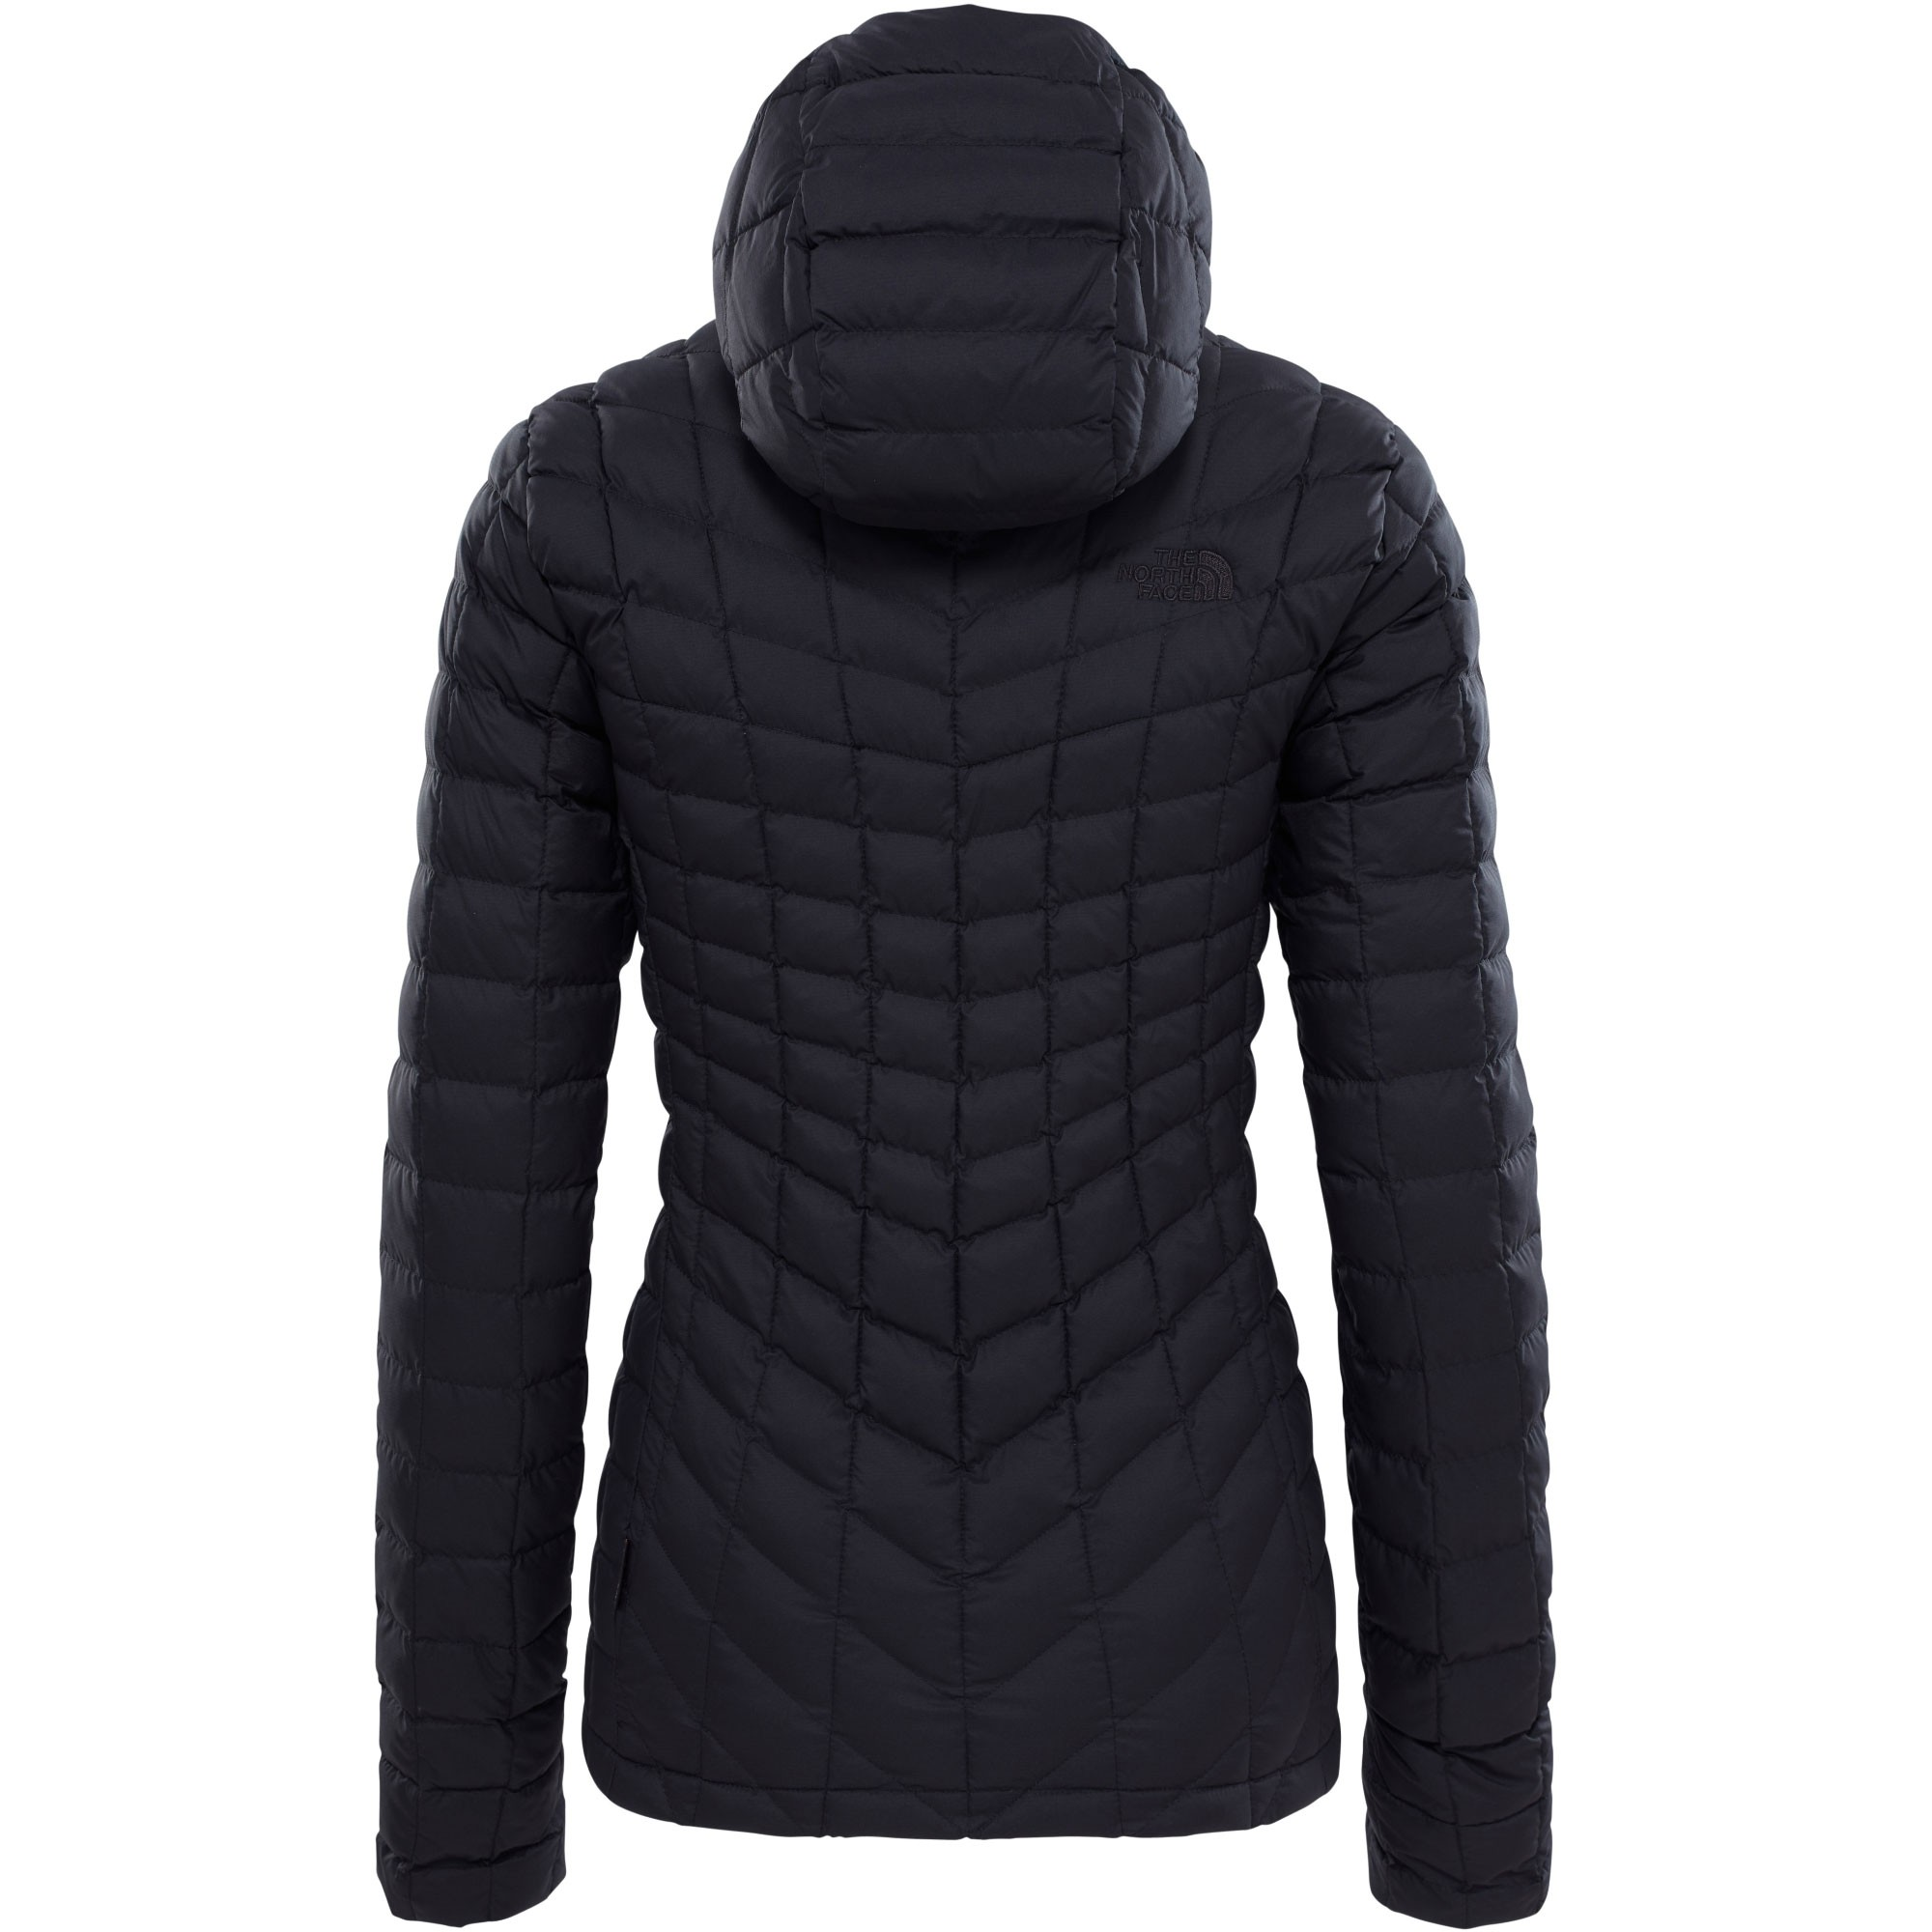 The-North-Face-Womens-Thermoball-Hoodie-TNF-Black-Matte